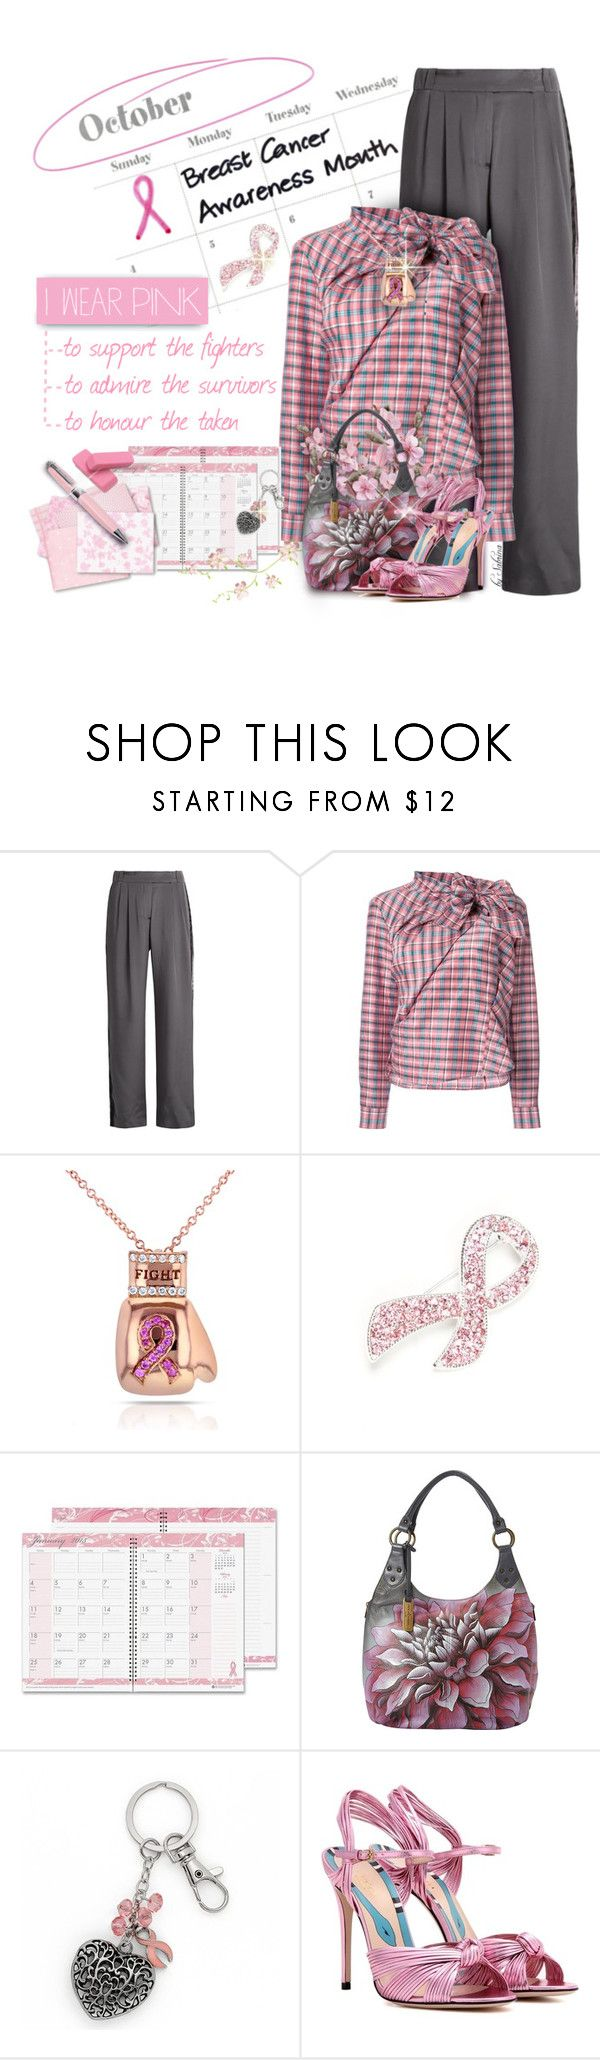 """""""231. Breast Cancer Awareness"""" by xiandrina ❤ liked on Polyvore featuring Serena Bute, Isabel Marant, Kobelli, Napier, House of Doolittle, Anuschka, Gucci, ICE London, Lumière and IWearPinkFor"""